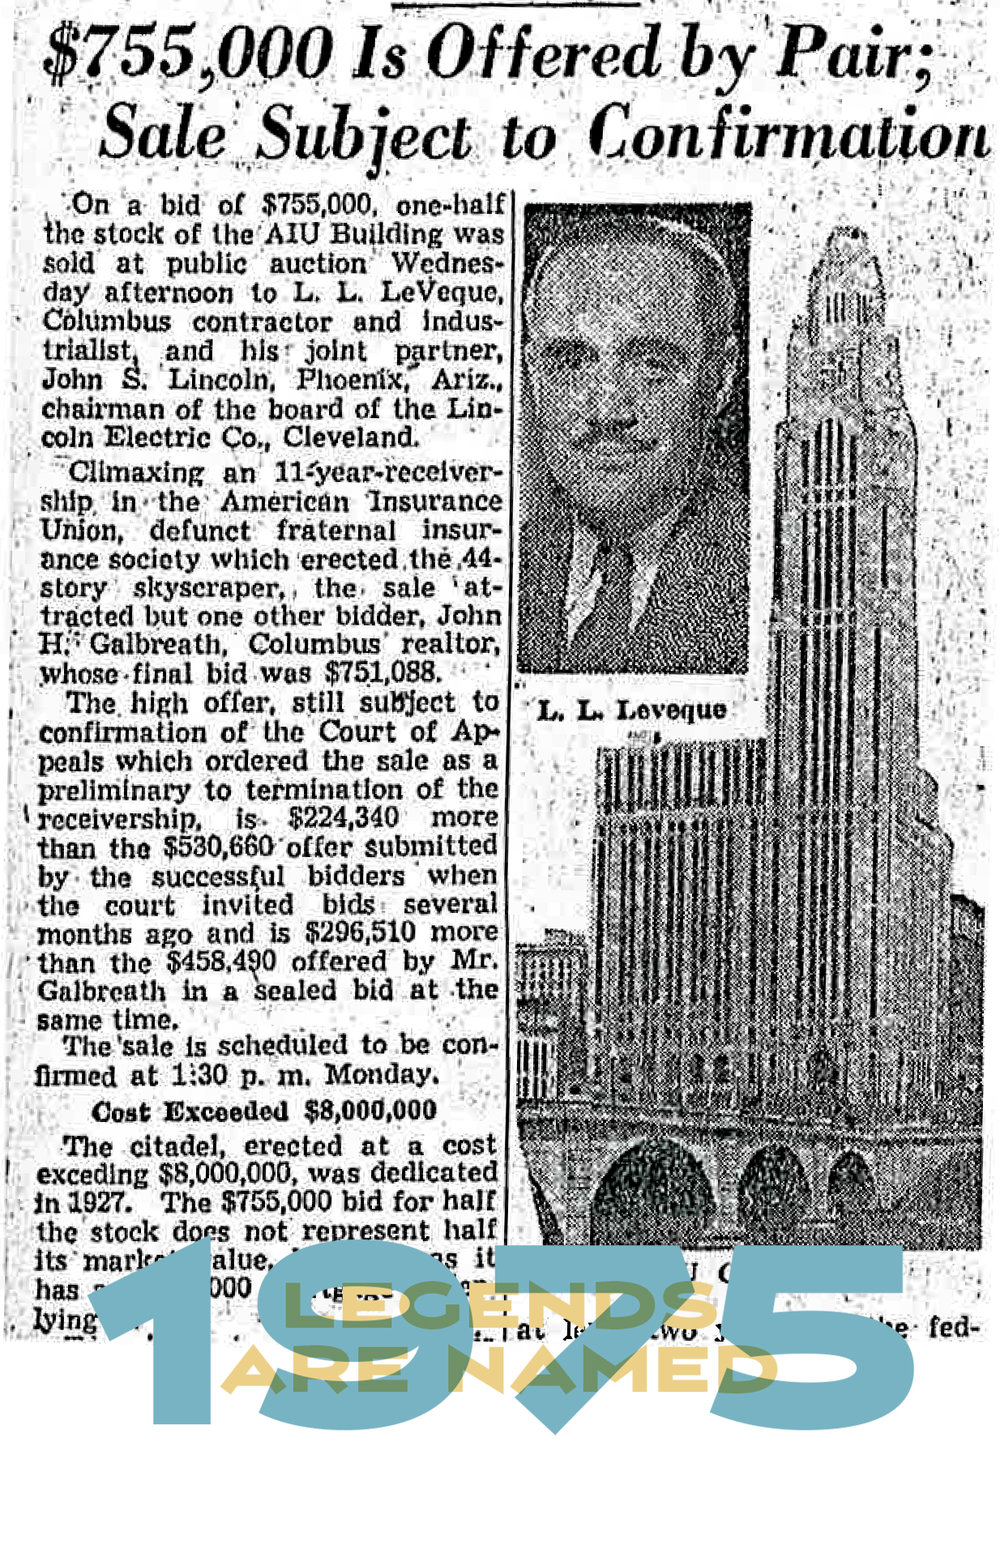 For $755,000 Leslie LeVeque And John C. Lincoln Purchase The American Insurance Union Citadel Building And Its Renamed LeVeque Tower.